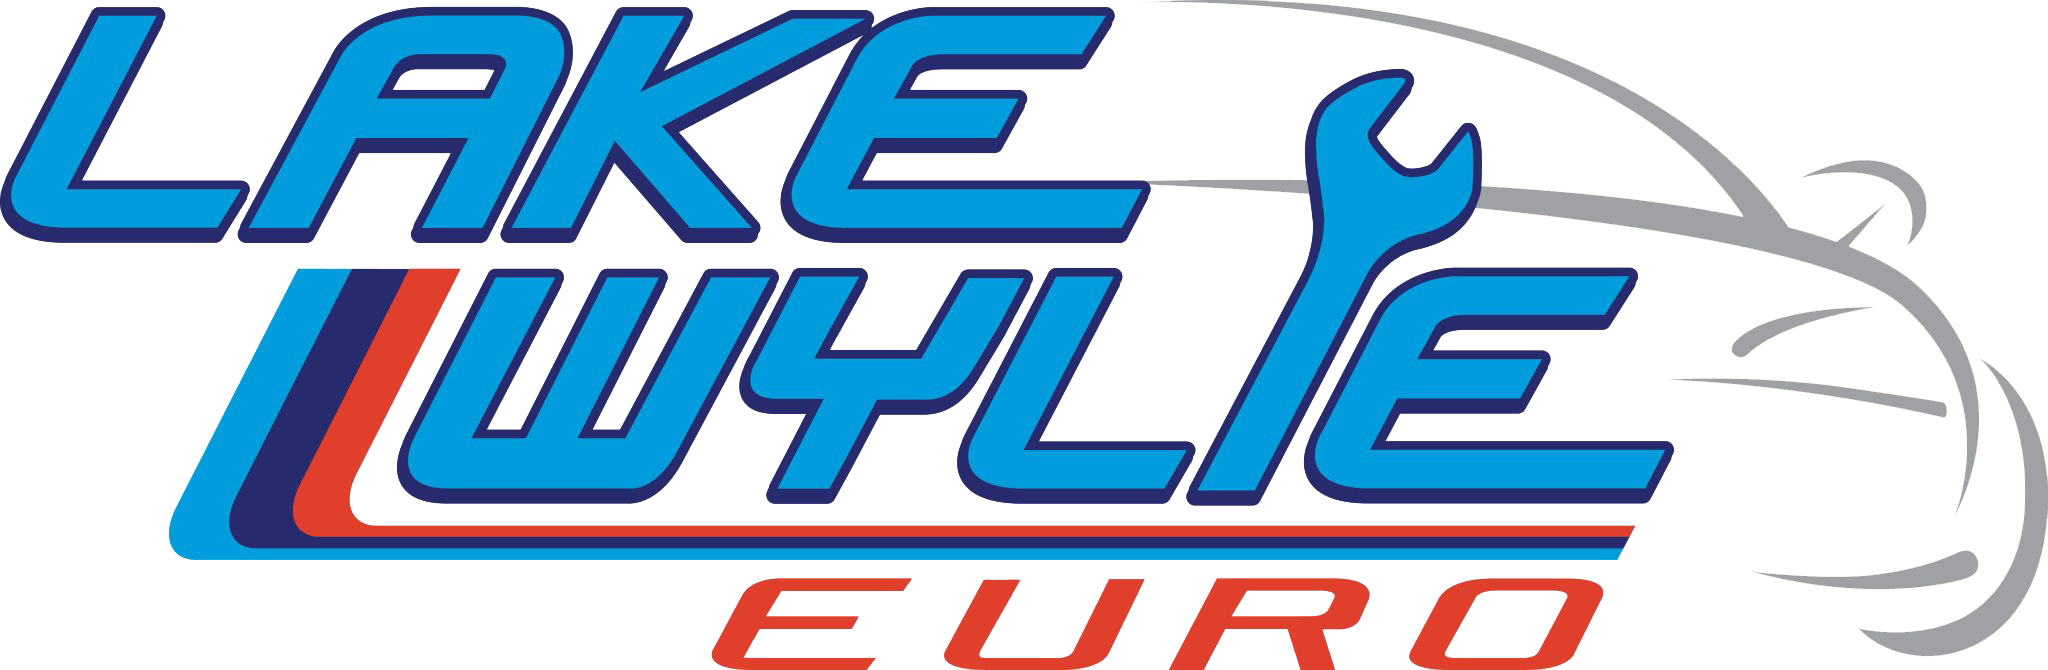 Lake Wylie Euro Bmw Repair Local German Car Repair Service